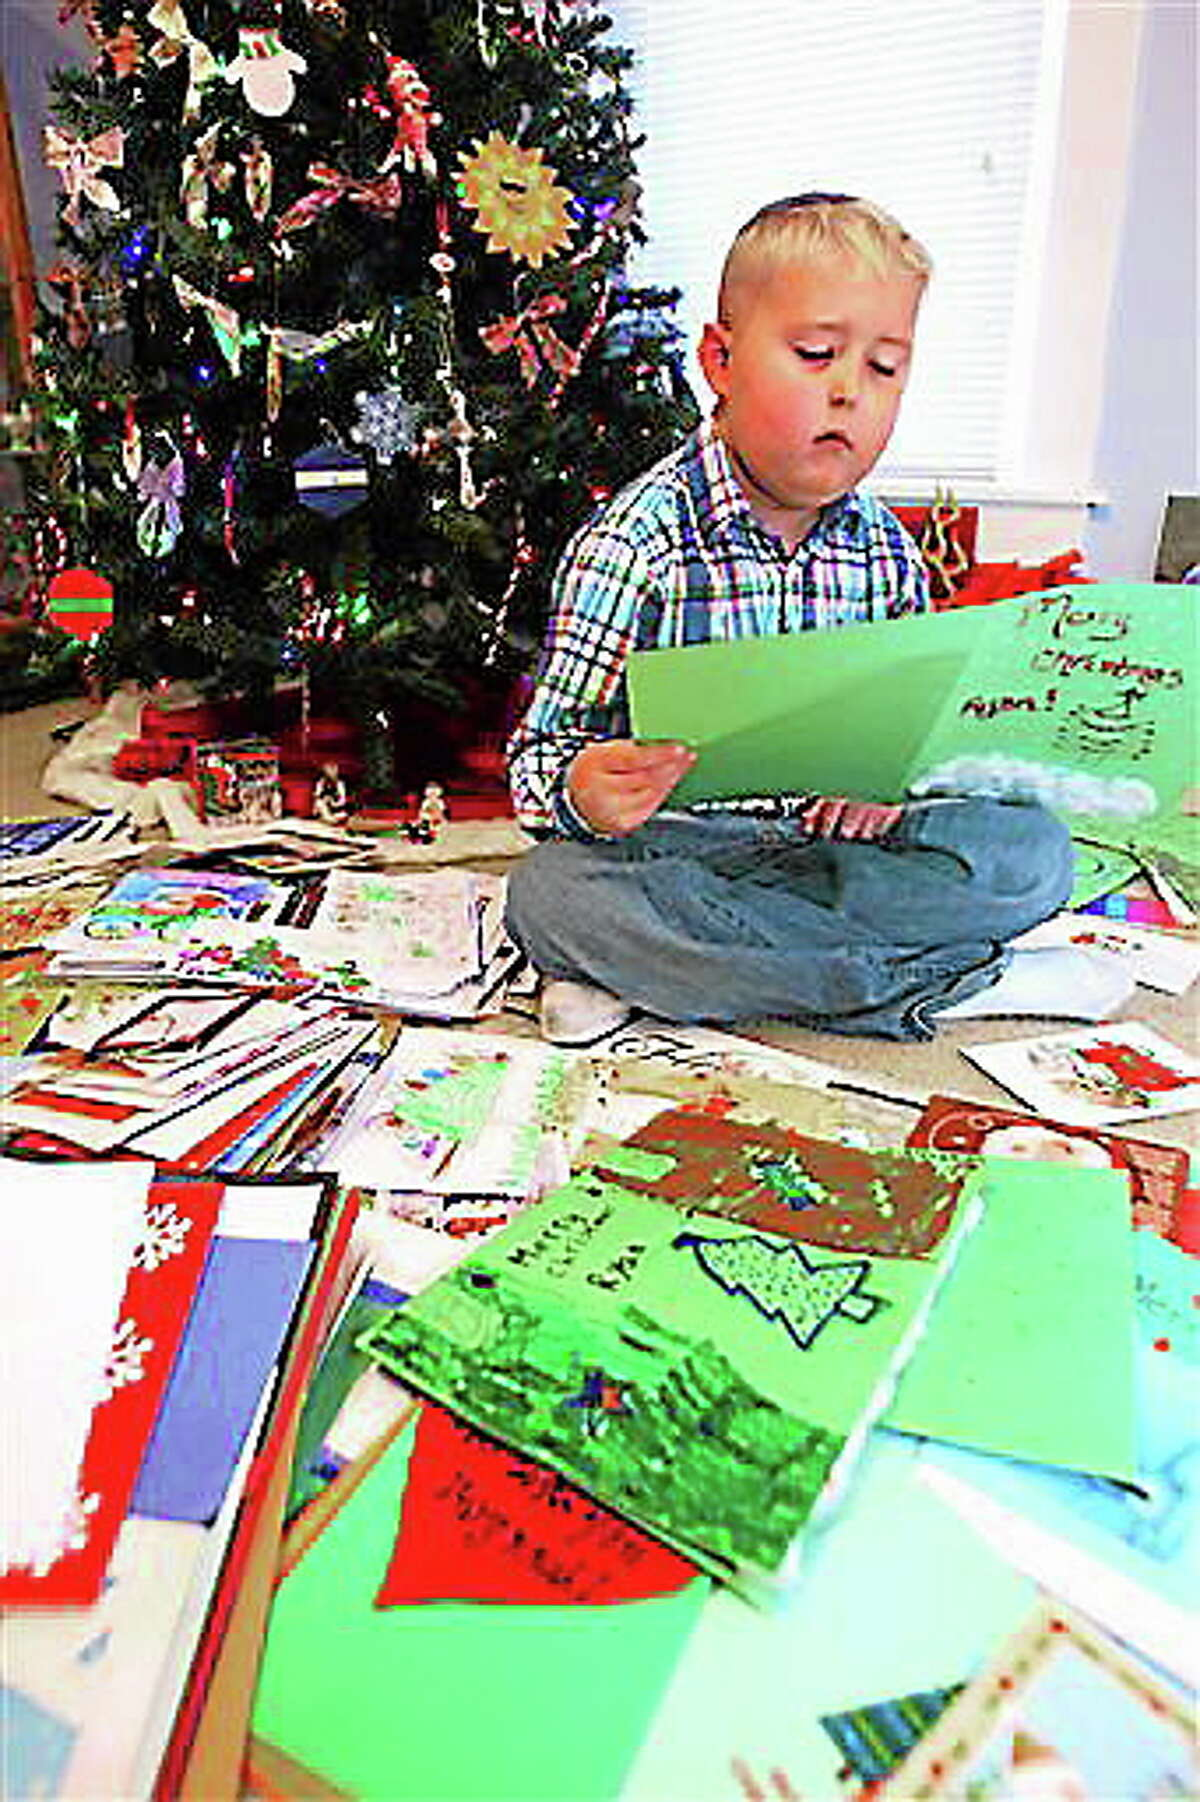 In this Nov. 8, 2013 photo, Ryan Beining, 8, reads Christmas cards from all over the world is his house in Kokomo, Ind. Ryan Beining's teachers didn't know what to do when they found out the 8-year-old's cancer treatments had stopped working. Ryan's family found out Oct. 1 that his treatments were no longer slowing the growth of his aggressive brain tumor. But an effort to send the boy Christmas cards has taken off, resulting in 6,000 greetings from around the world. (AP Photo/The Kokomo Tribune, Tim Bath)